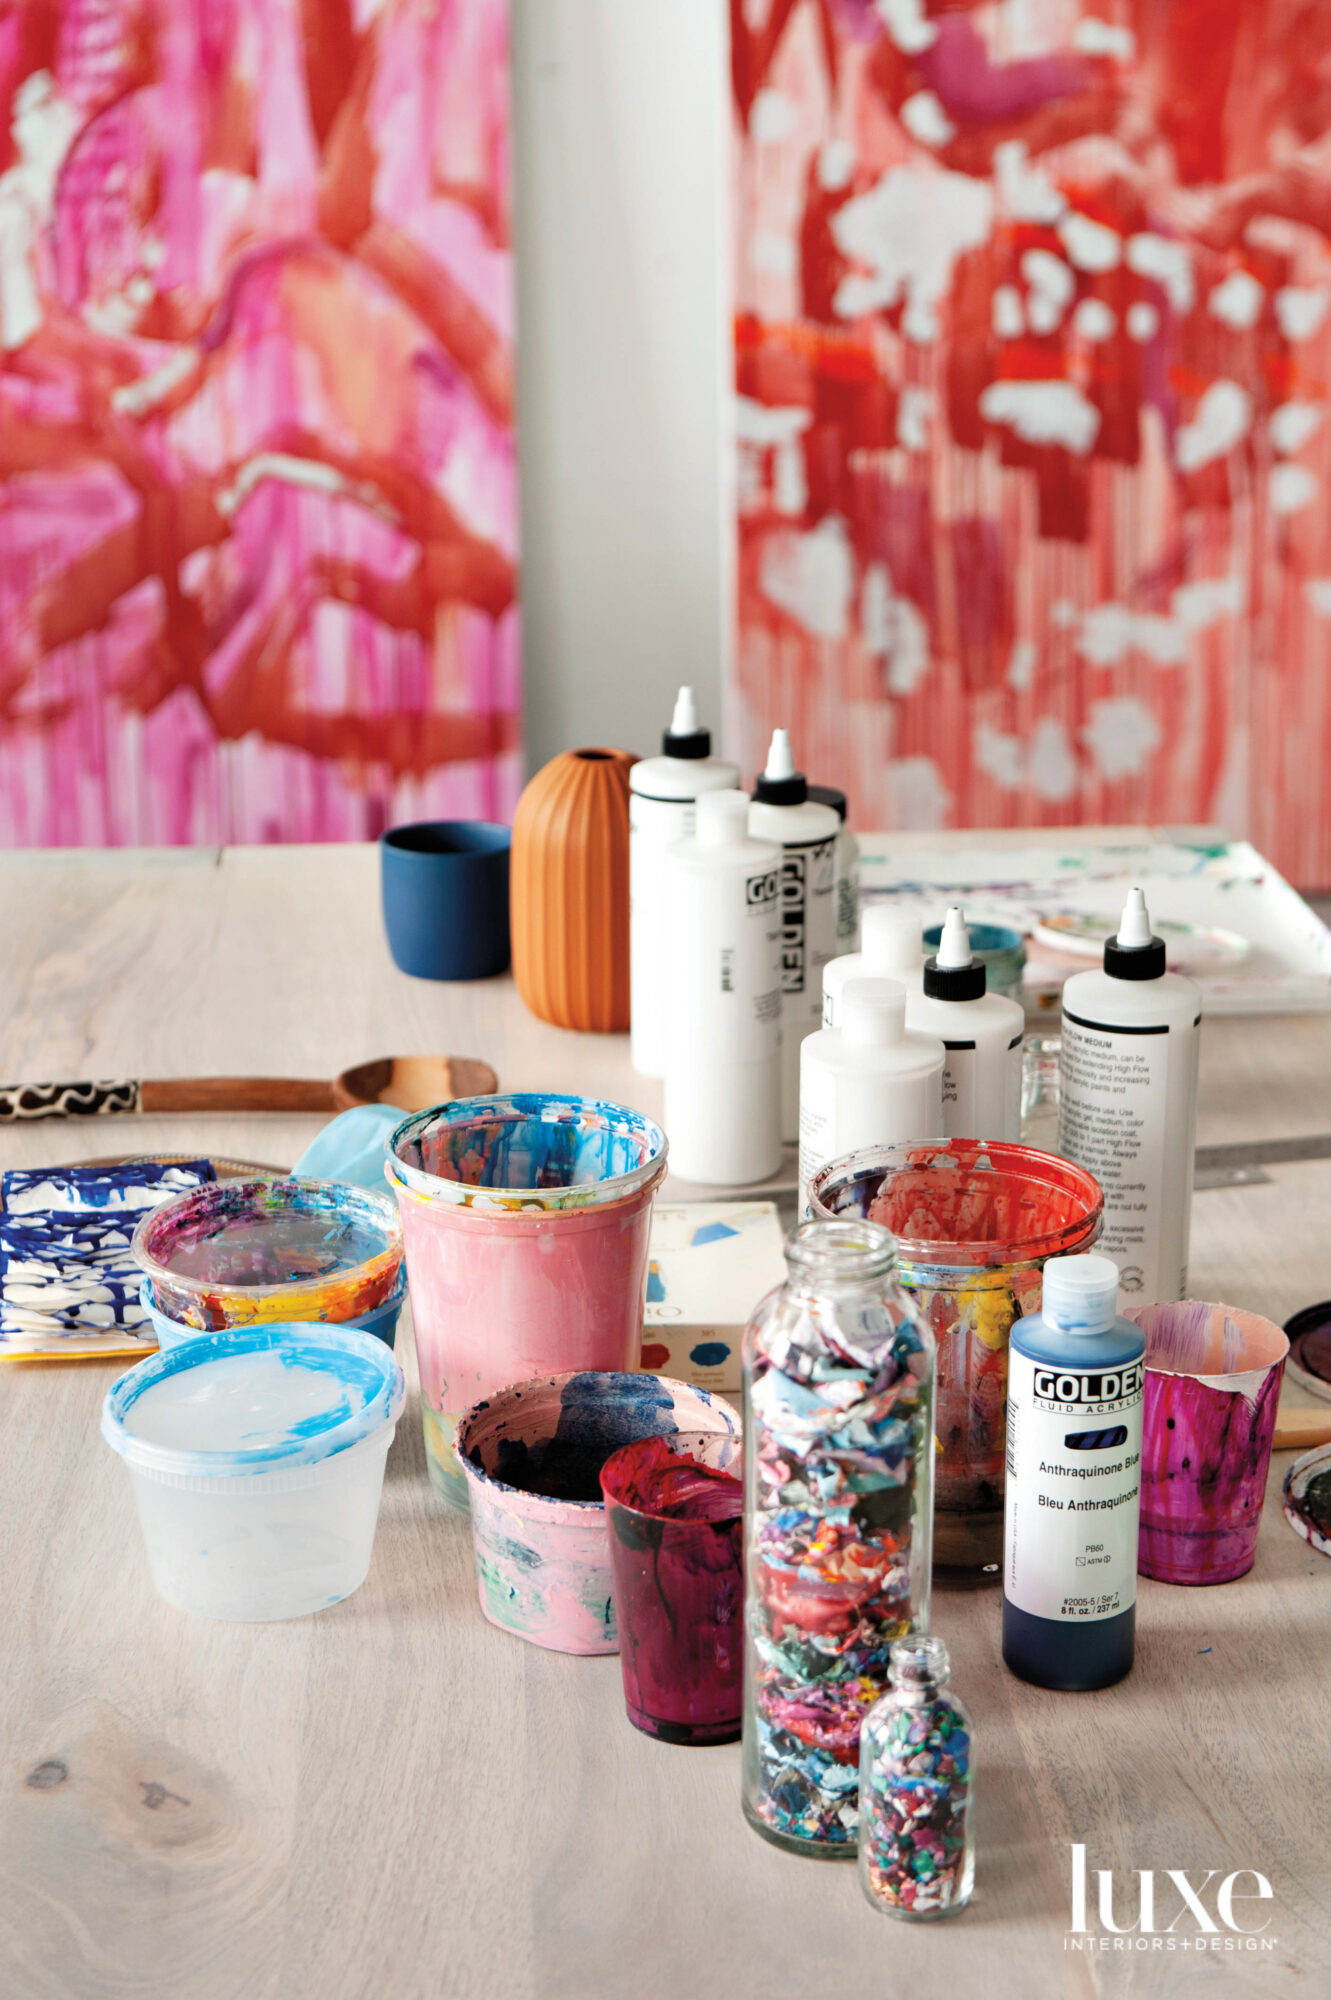 Paint and materials are in the forefront on the table and two abstract paintings hang behind it.